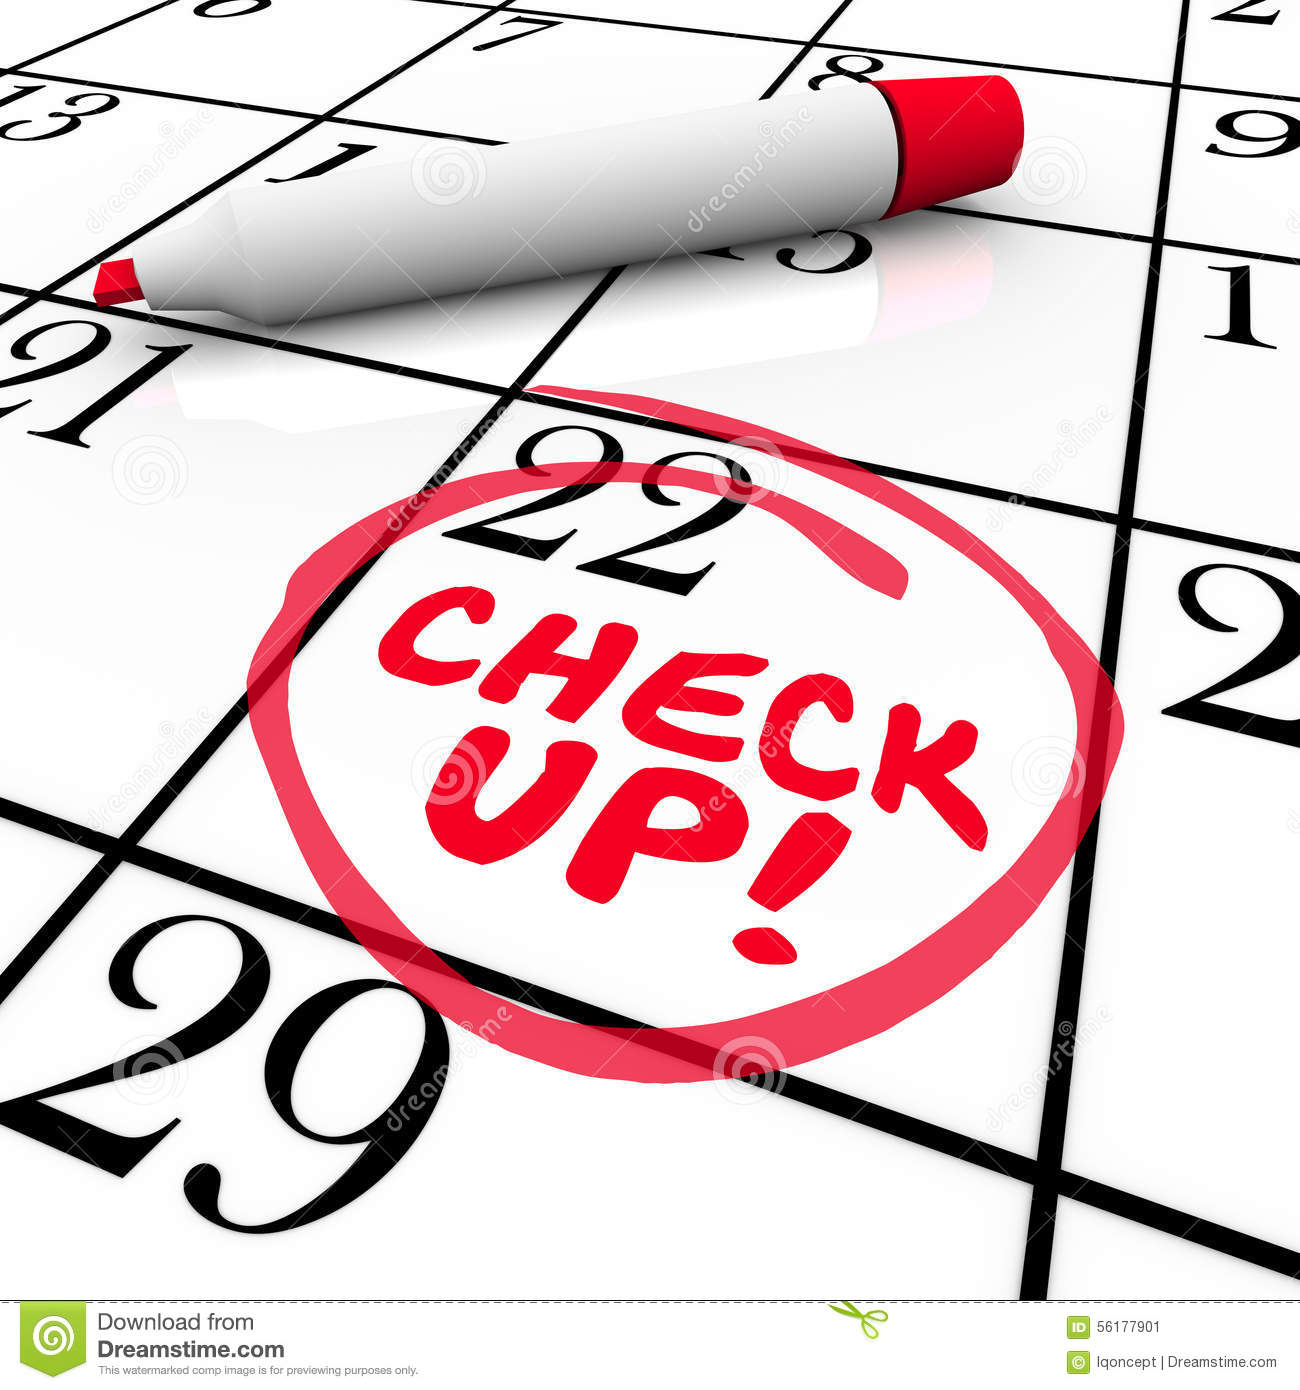 Appointment Reminder On Calendar Schedule Royalty Free Stock ...